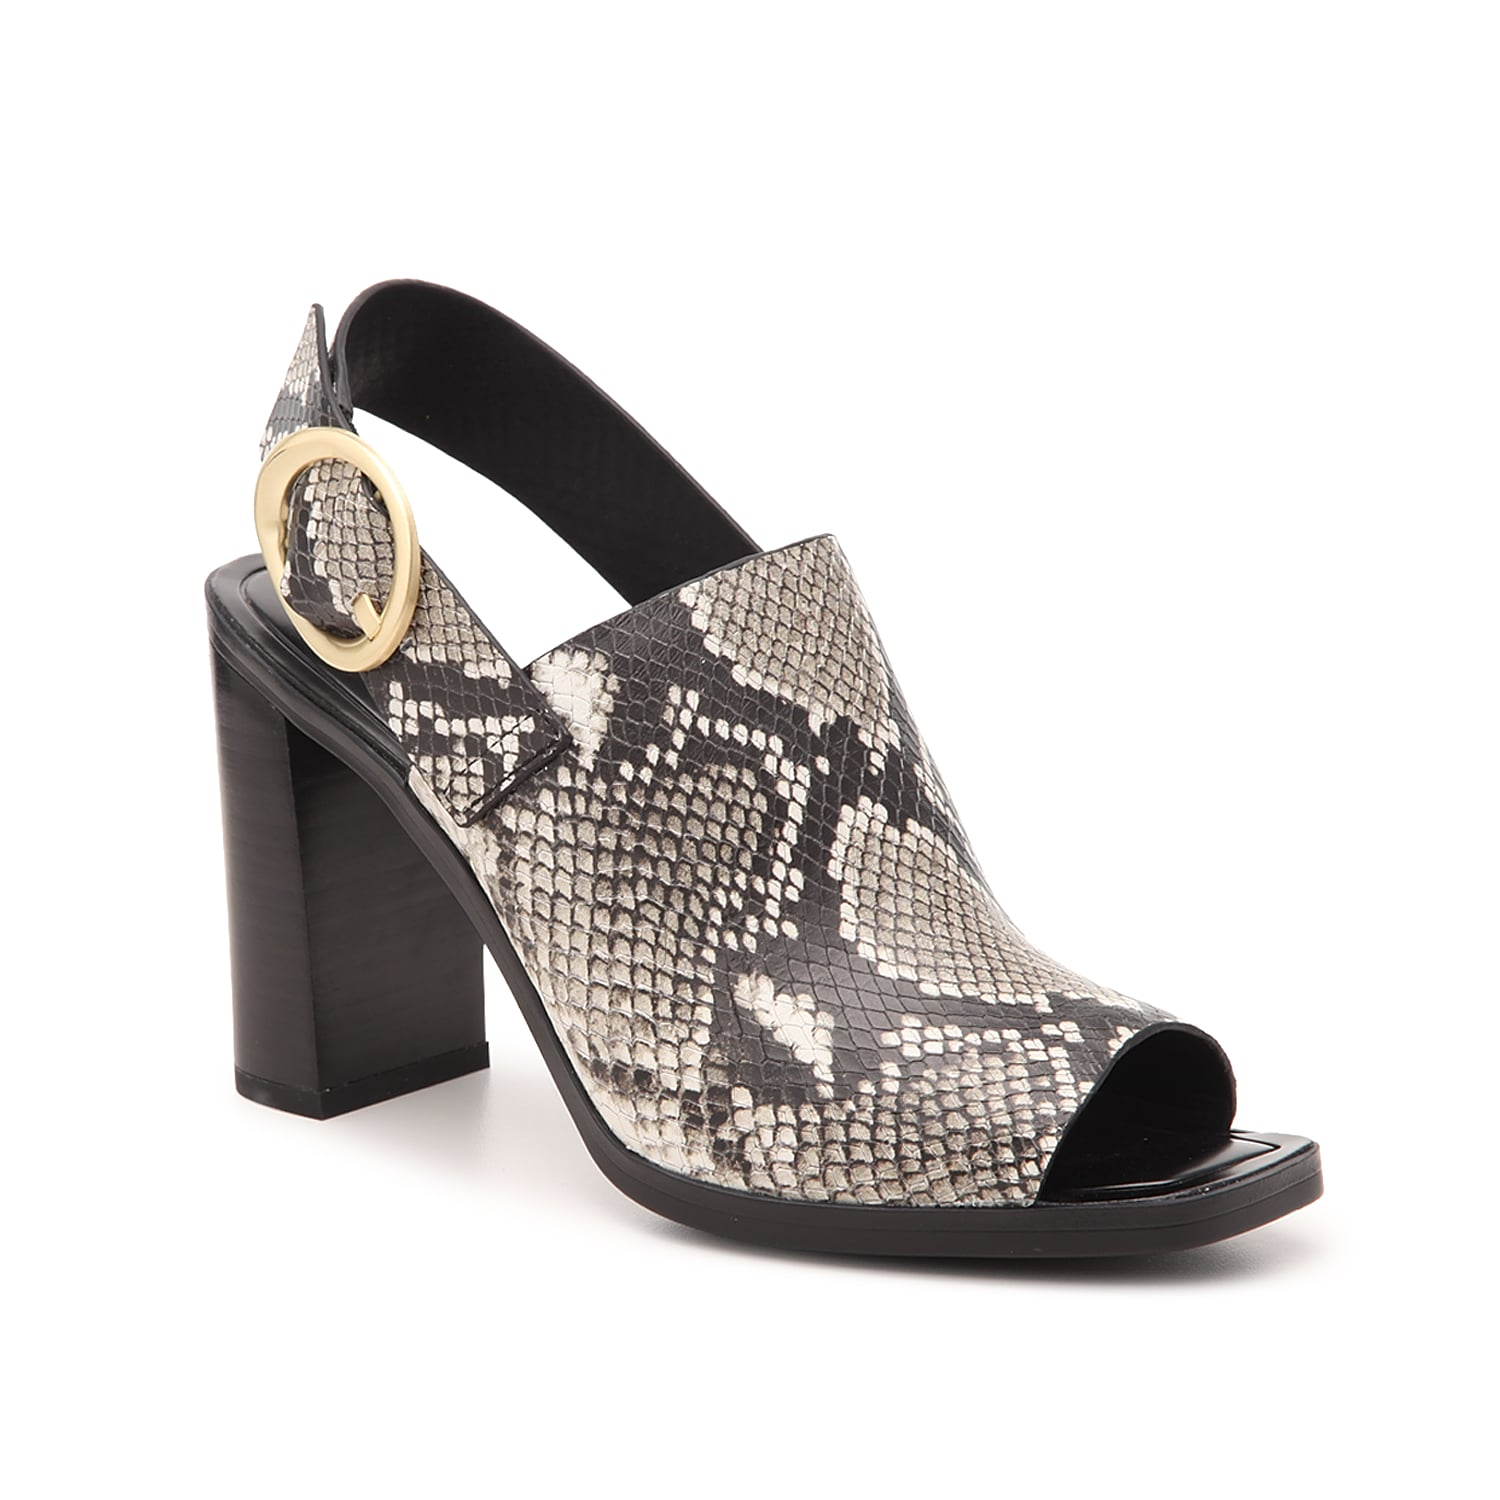 Lift your sophisticated style with the snake print Walter sandal from Sarto by Franco Sarto. The brushed metal buckle and square peep toe complement the hooded leather construction for your new block heeled essential.